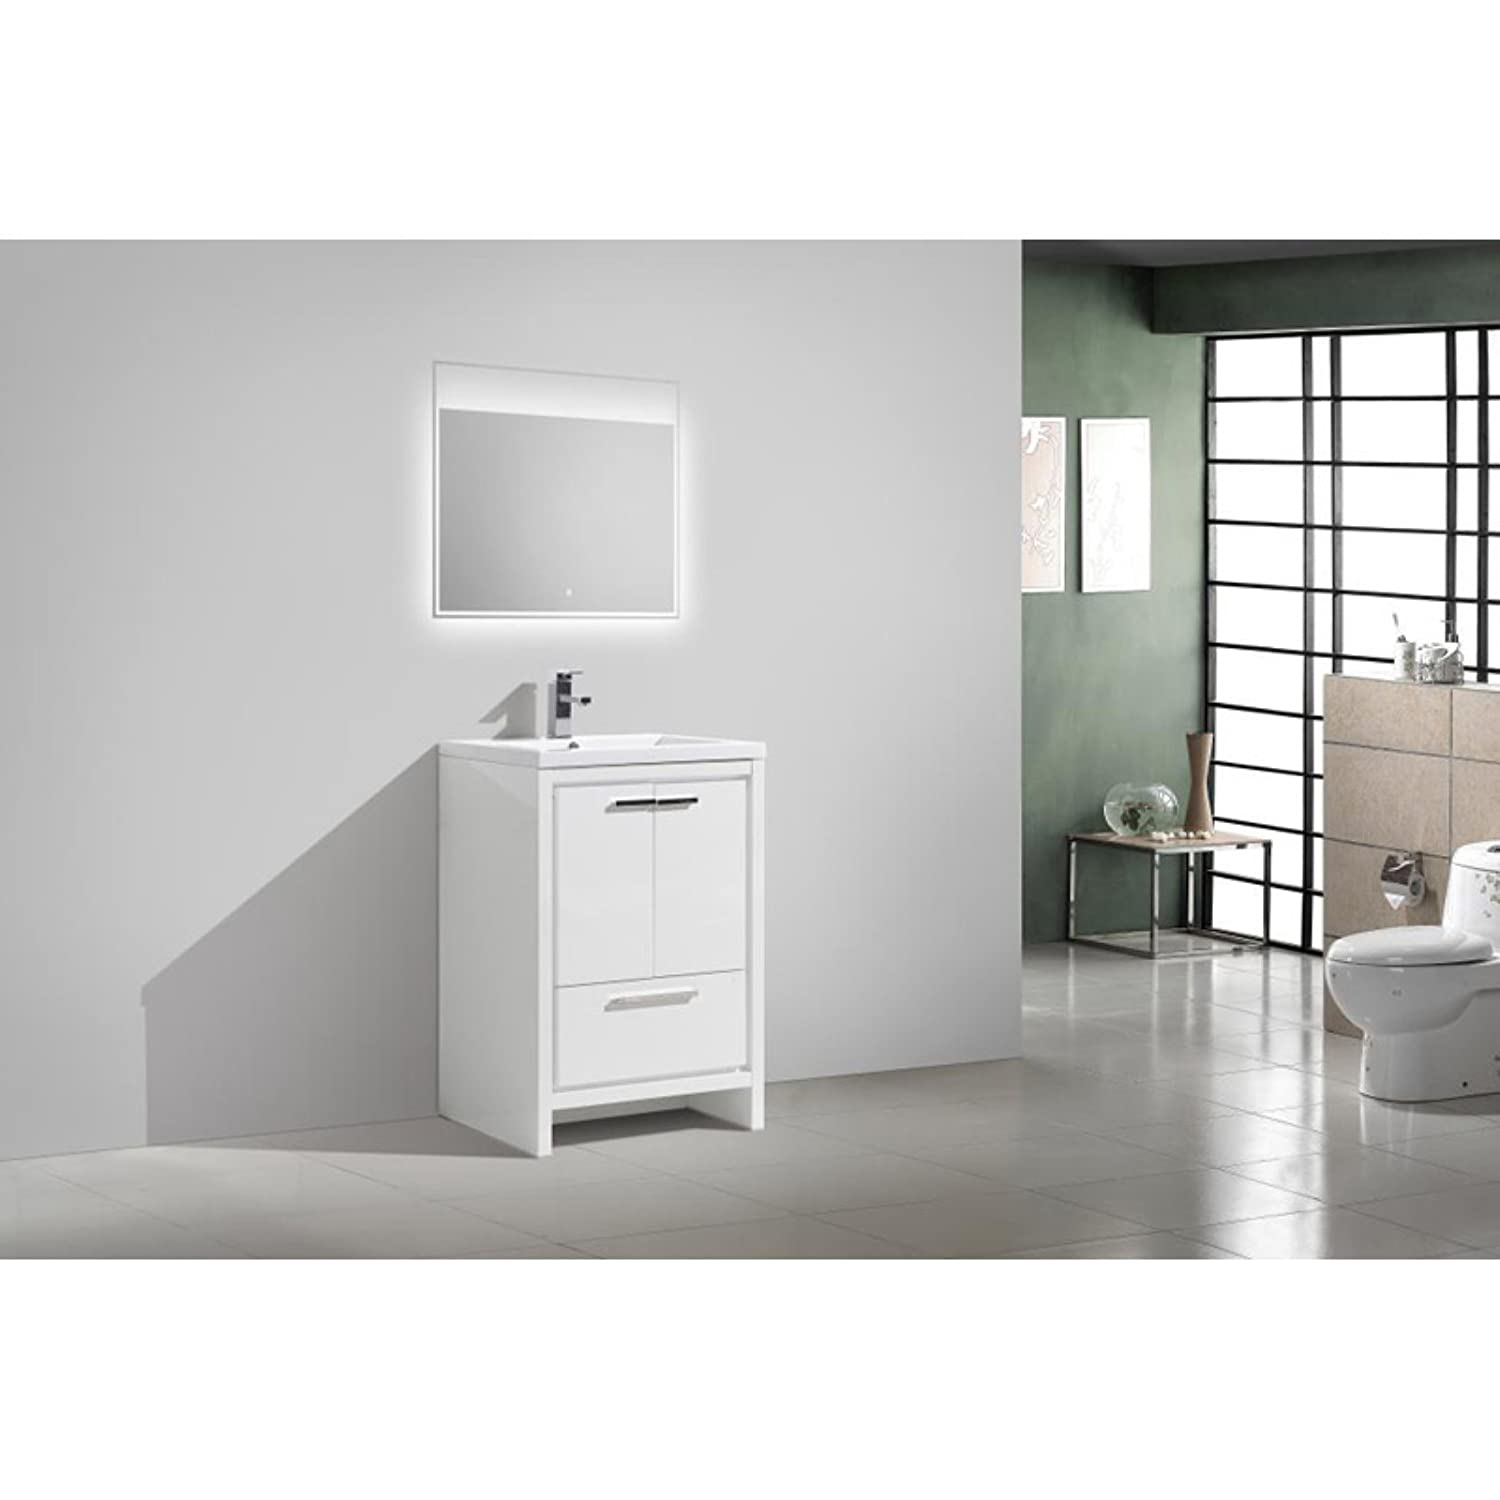 white where sink cabinet of to off with achieve vanity powder full drawer size drawers top perfect for bathroom shop room restroom vanities cabinets grey charisma